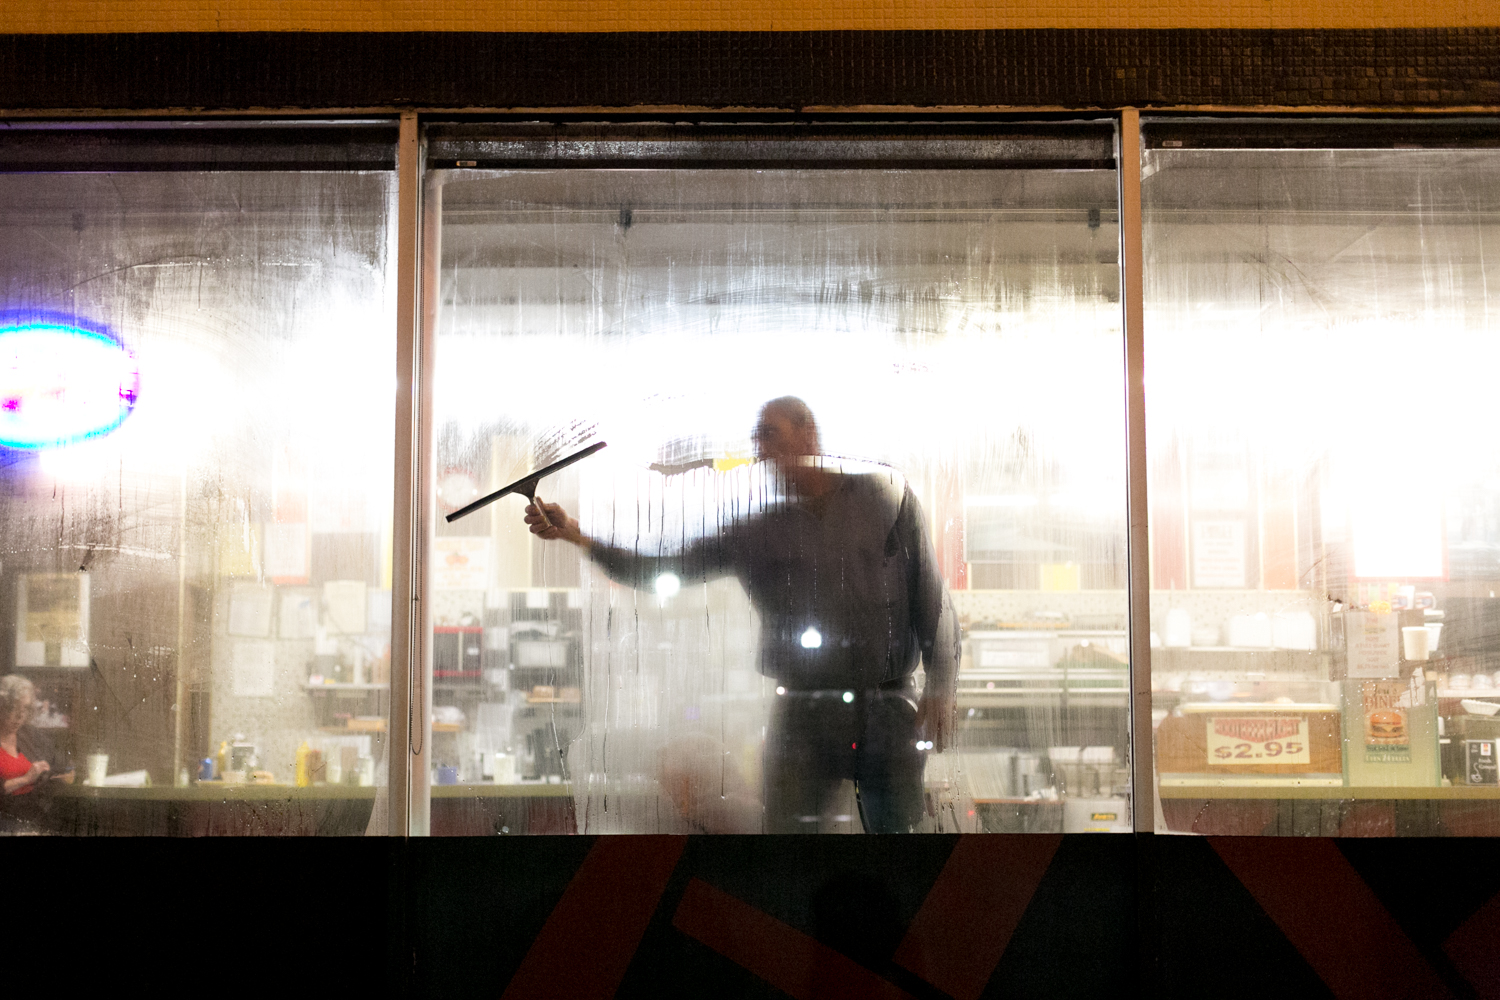 When the windows fog up at Jeri's grill, Al squeegees them right up. He dates the cook at the 24 hour diner and helps out where he can. 17/24